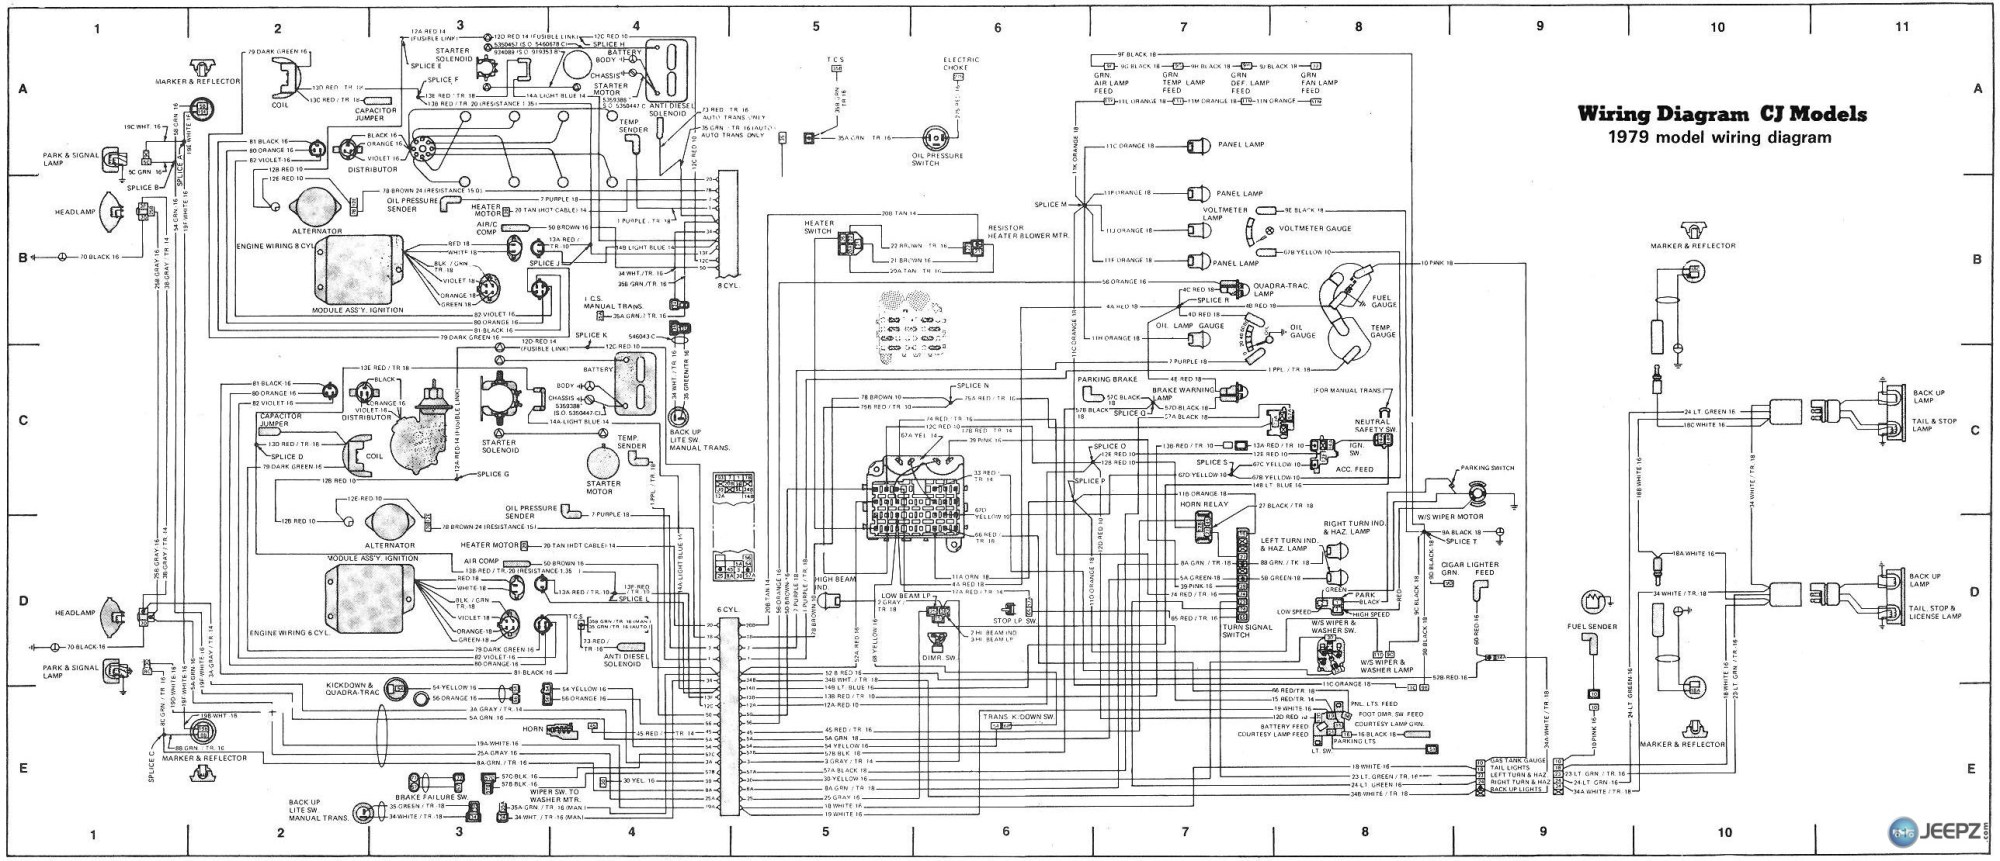 hight resolution of jeep cj5 wiring schematic wiring diagram for you 1972 jeep cj5 wiring diagram stop light wiring diagrams 1966 cj5 source tail light